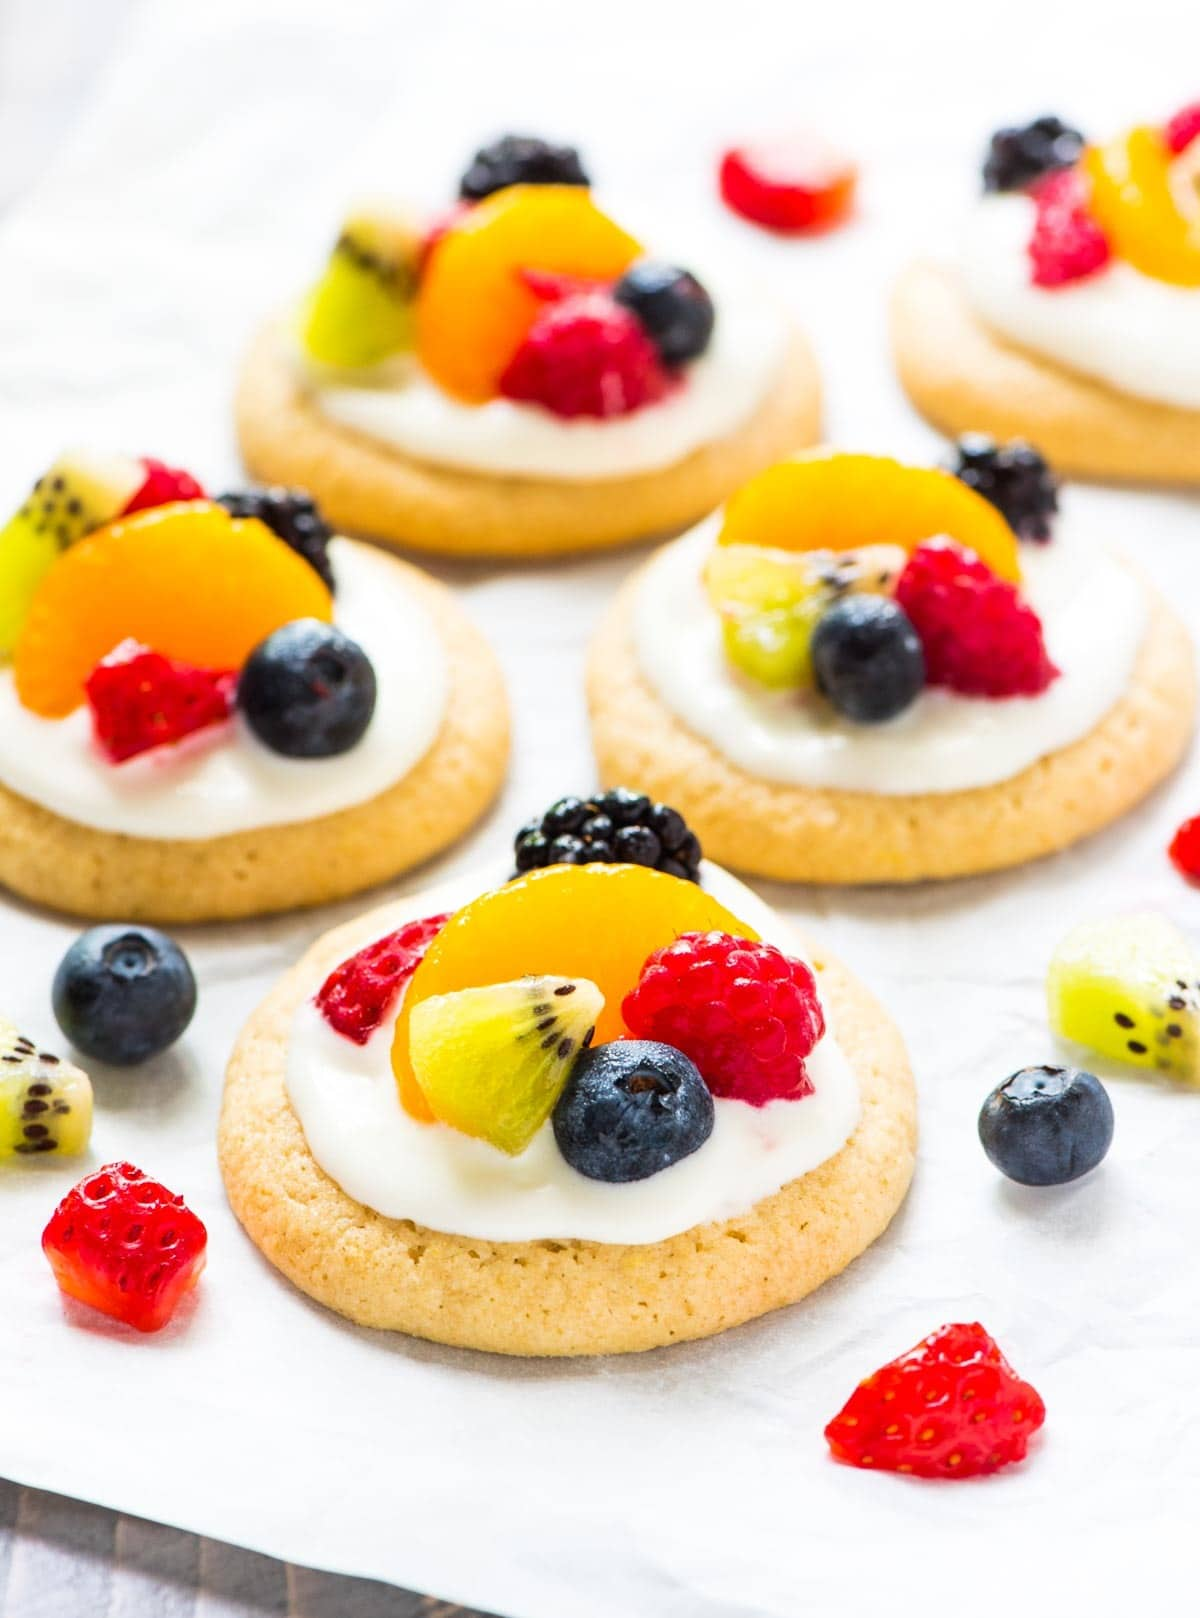 Mini Fruit Pizza Cookies — so fun and cute! Buttery lemon sugar cookies topped with sweet cream cheese frosting and fresh fruit. Easy to make and perfect for summer. @wellplated